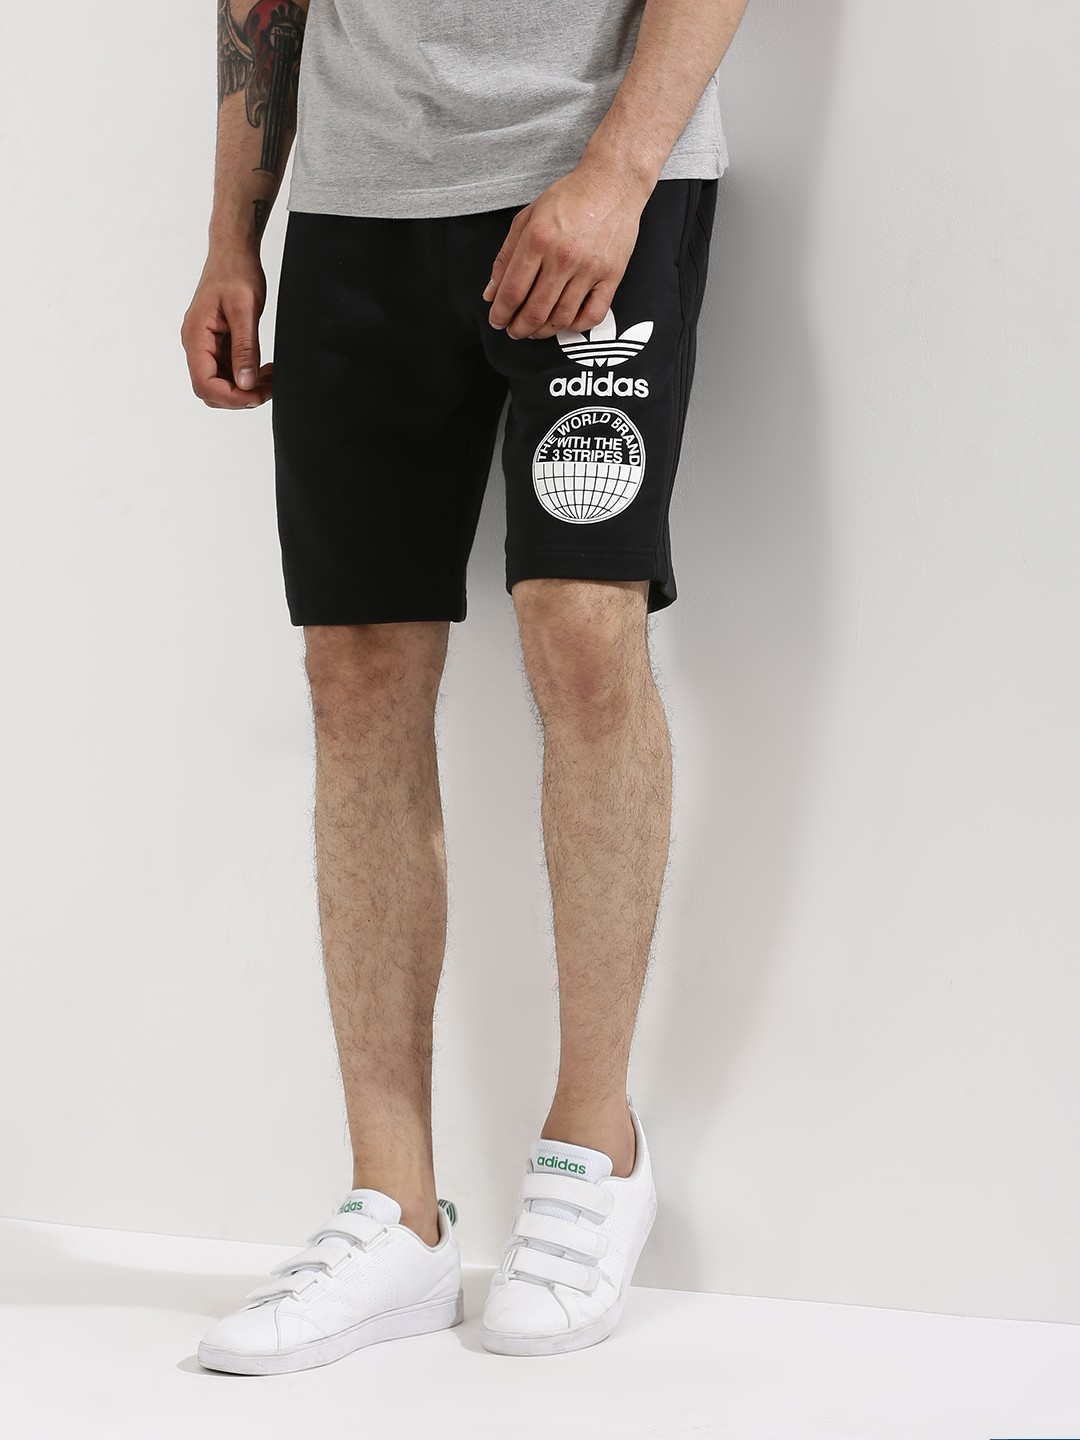 ... ORIGINALS Street Graphic Shorts For Men - Men's Shorts Online in India